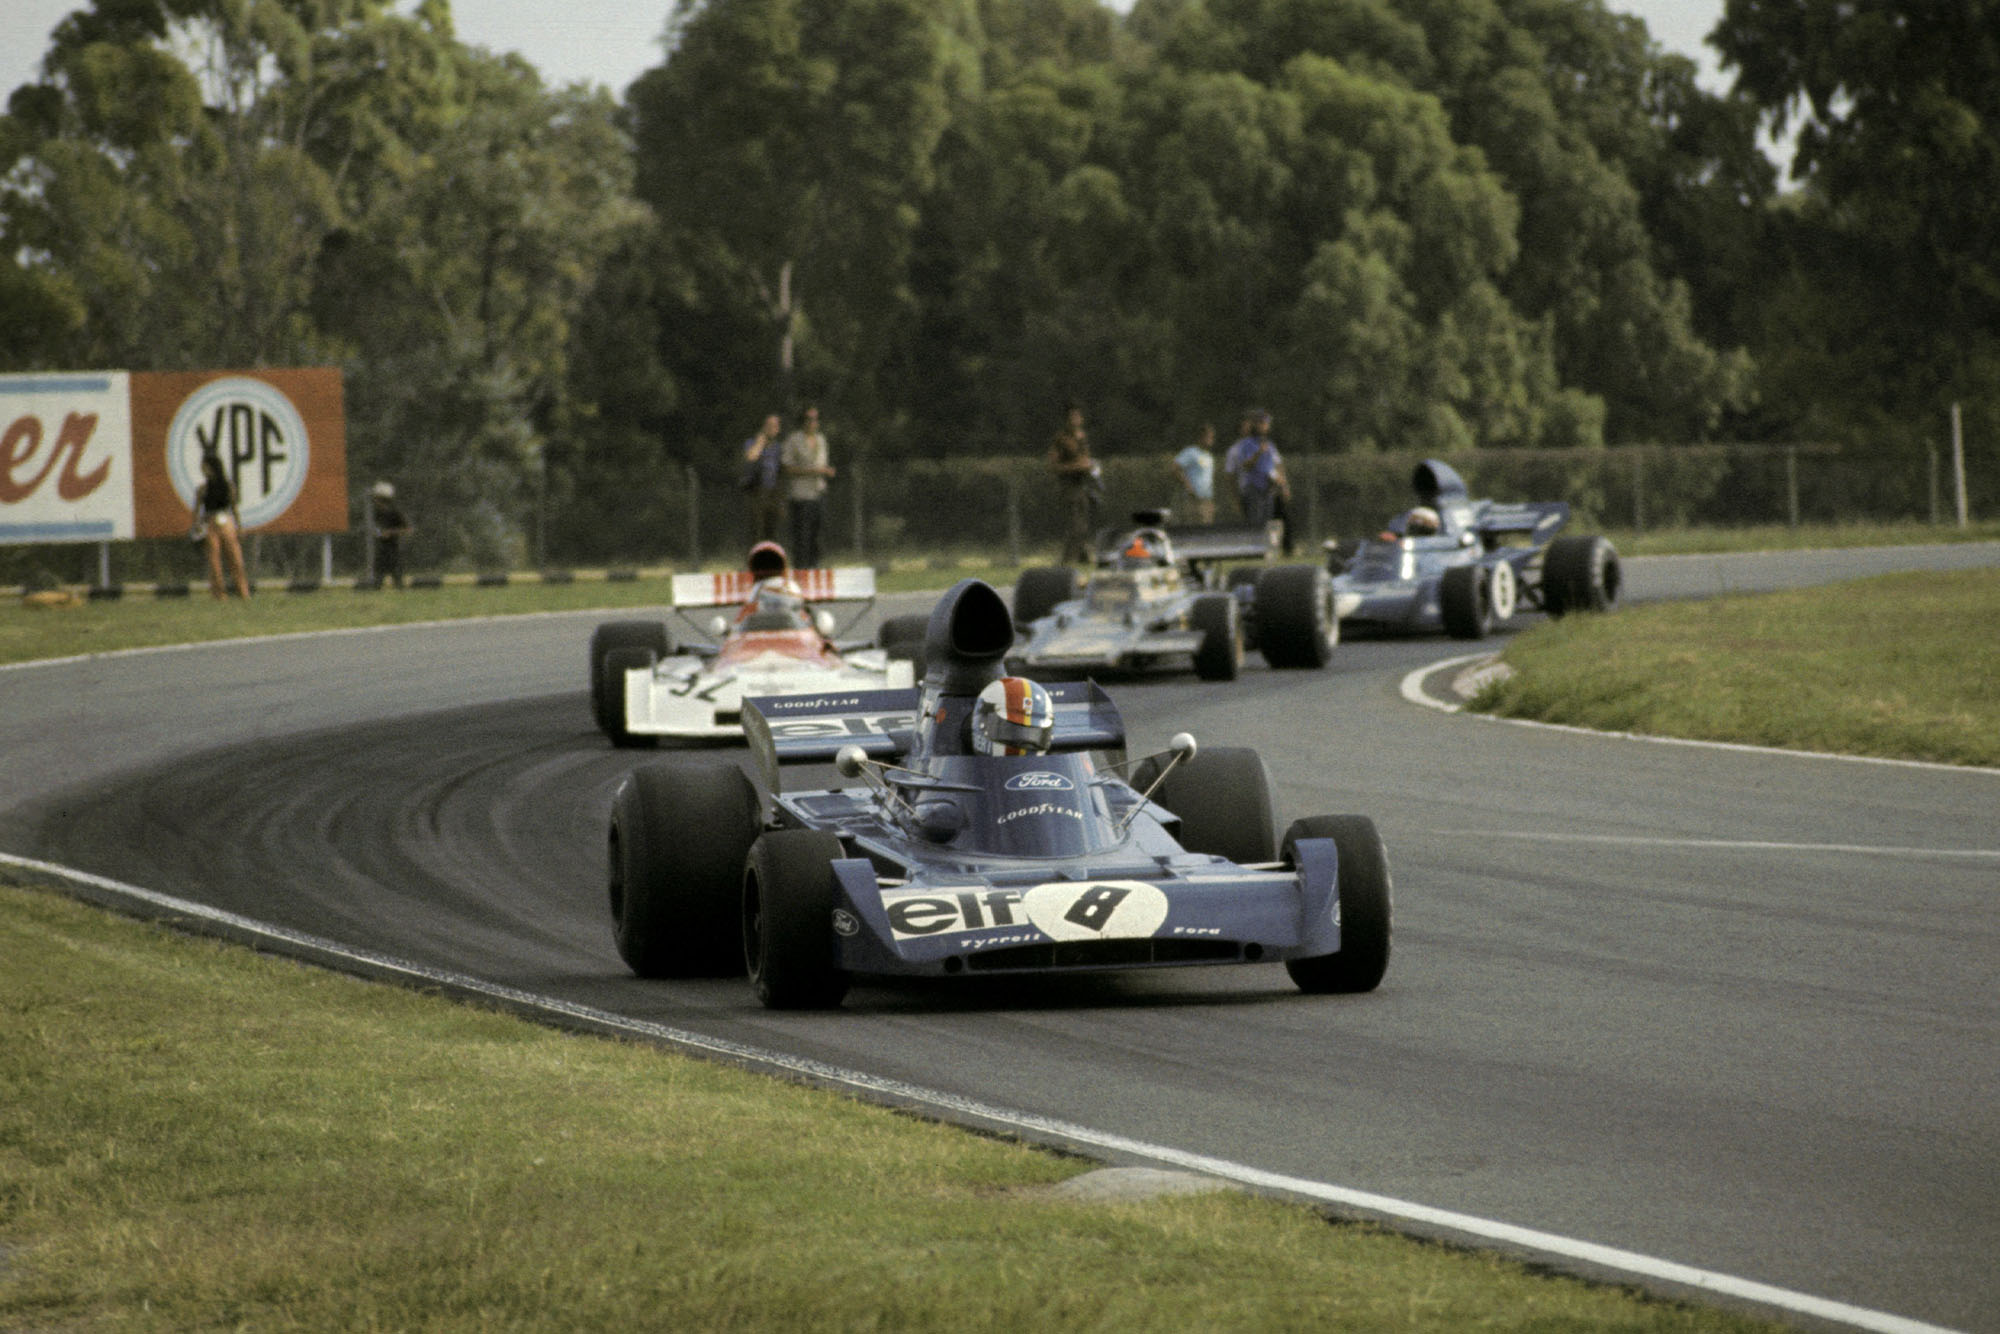 Second placed Francois Cevert (FRA) Tyrrell 006 leads the race from pole sitter Clay Regazzoni (SUI) BRM P160D, who finished seventh; his team mate Jackie Stewart (GBR) Tyrrell 005 who finished third and race winner Emerson Fittipaldi (BRA) Lotus 72D.